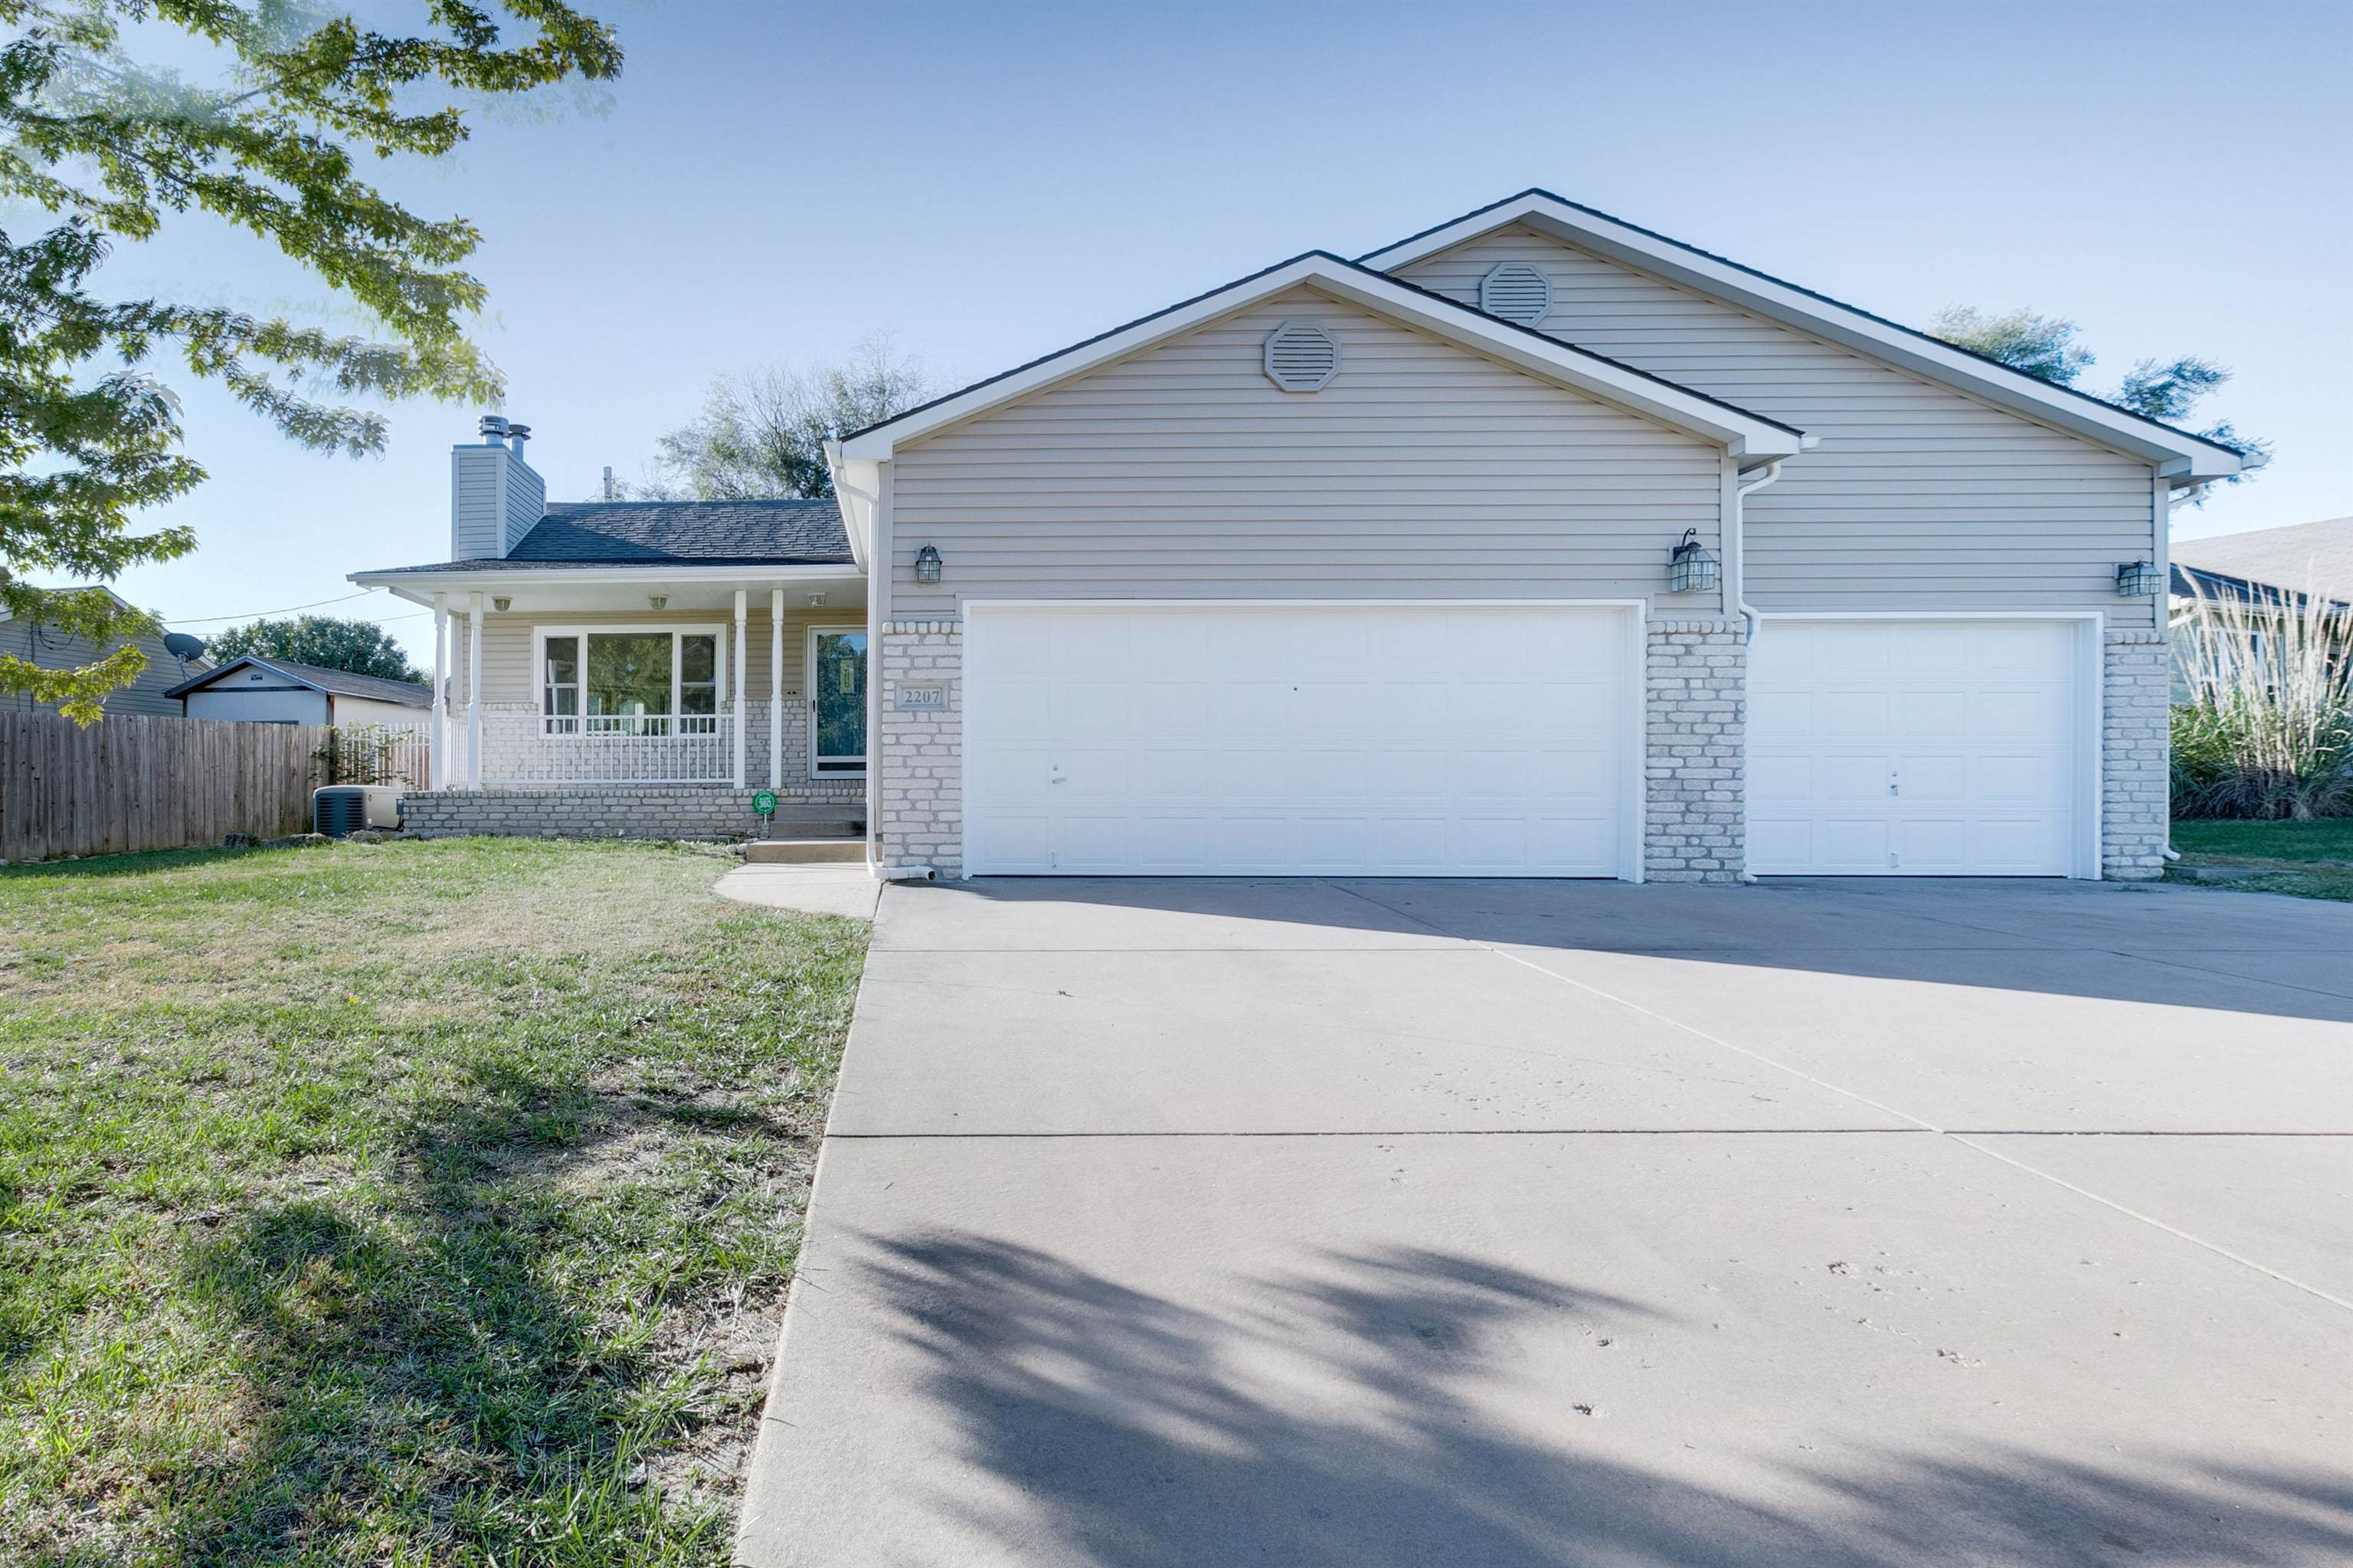 Welcome home to this great house in Park City next to Habiger Park, with a nice extended walking pat